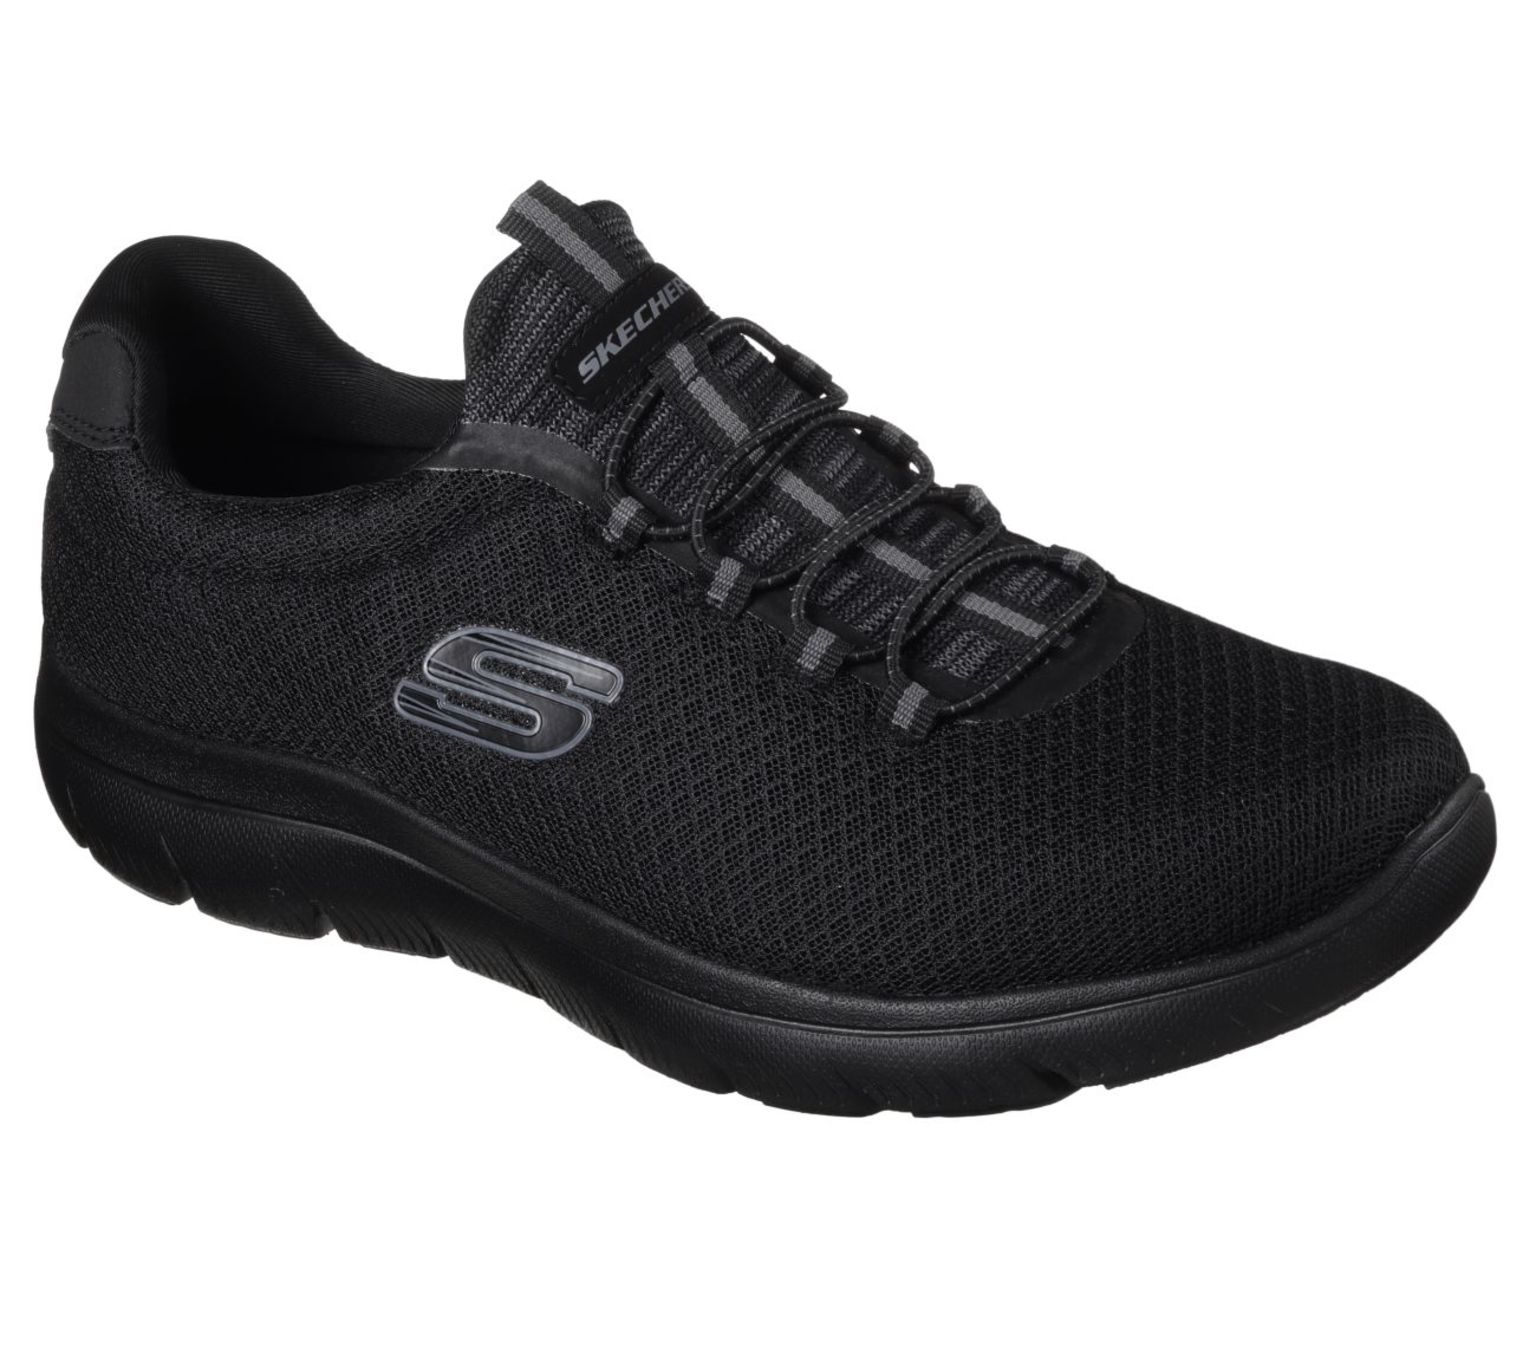 Skechers Sneakers Summits mens